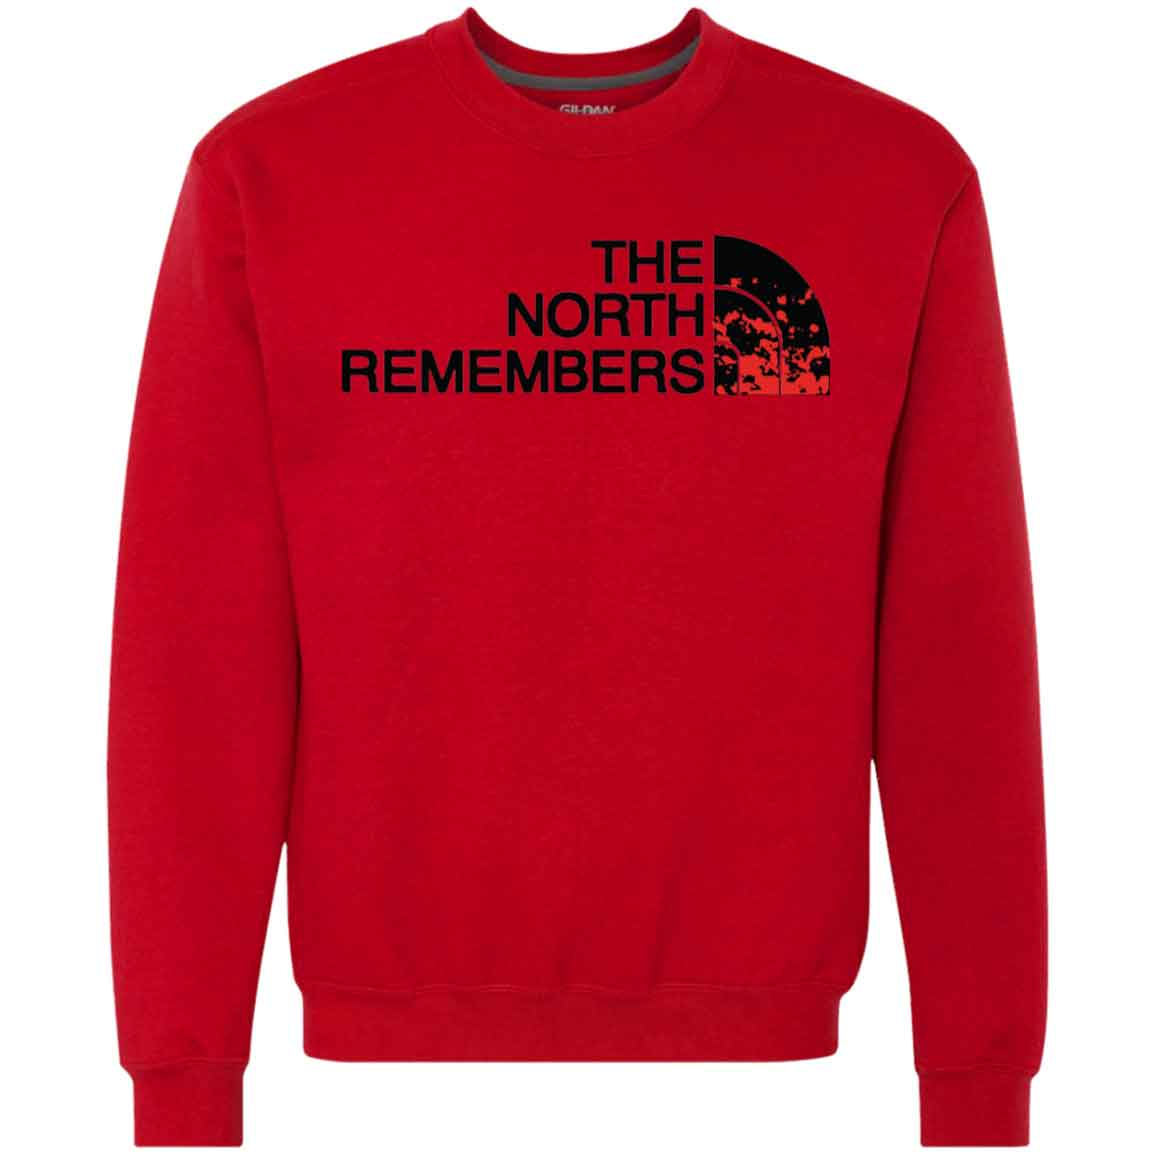 80541332e The North Face The North Remembers Hoodies Sweatshirts